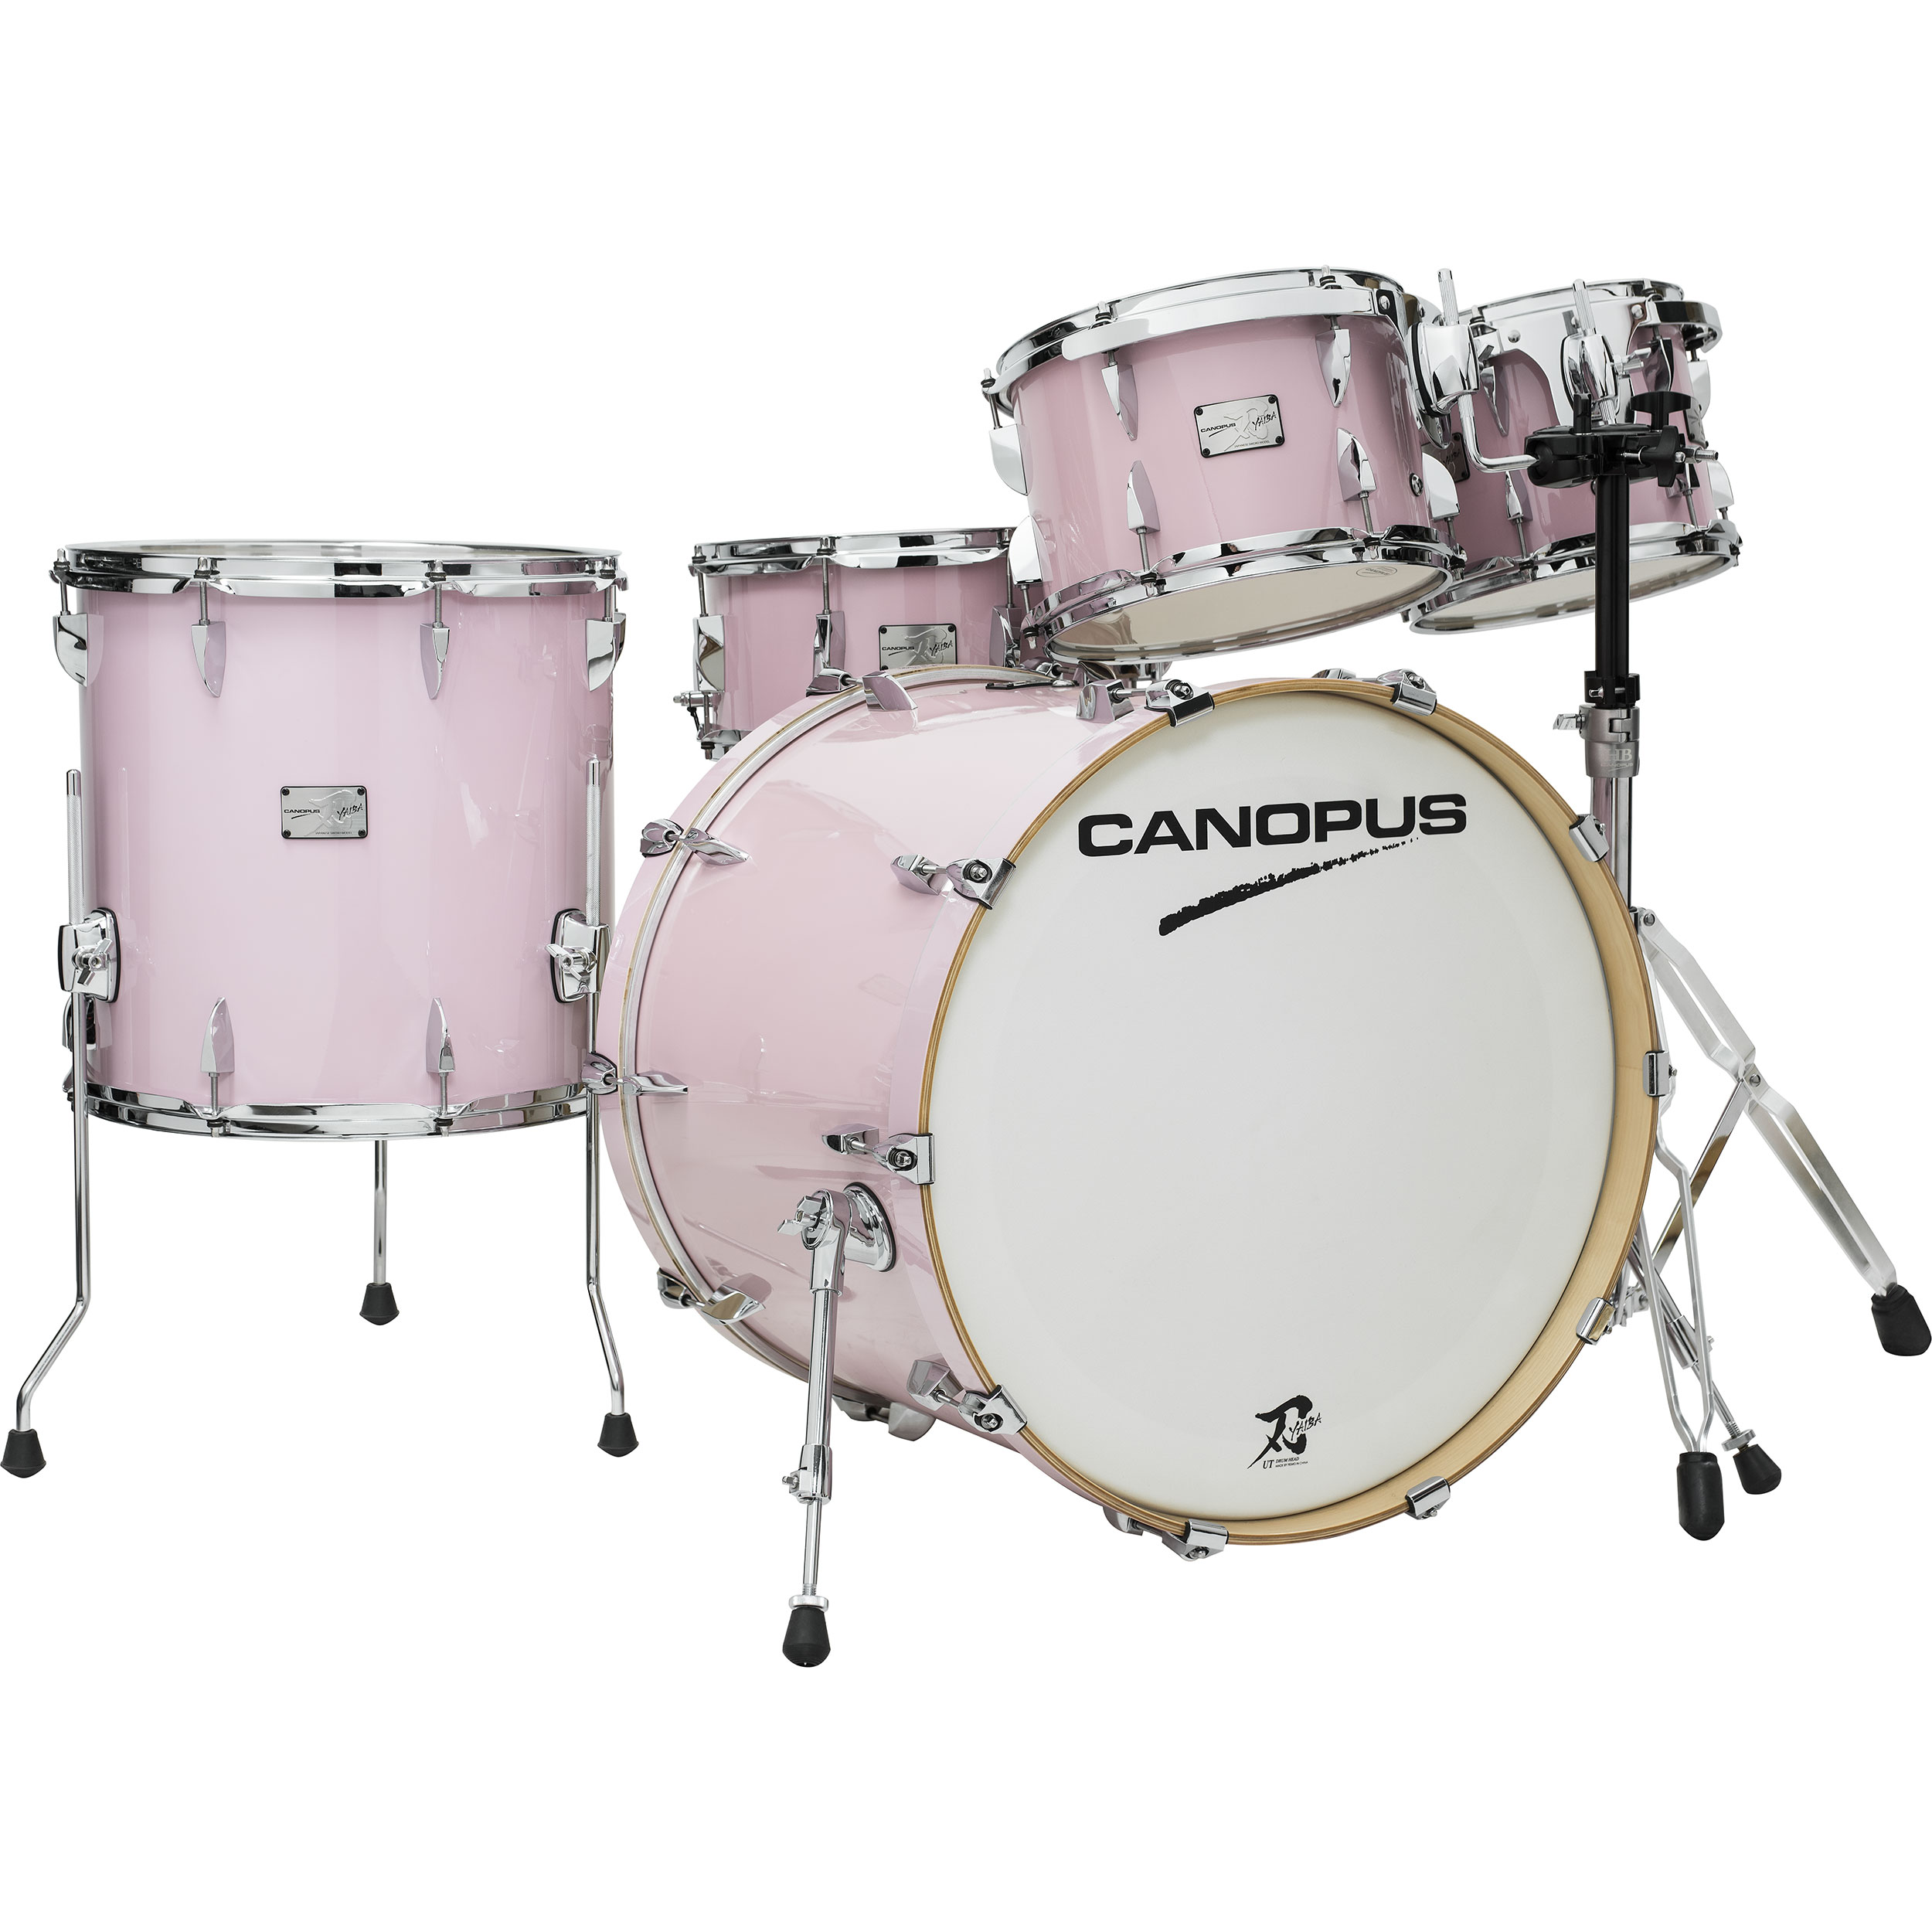 "Canopus One-of-a-Kind Yaiba ""Groove Kit"" 5-Piece Drum Set Shell Pack (22"" Bass, 10/12/16"" Toms, 14"" Snare) in Pink"